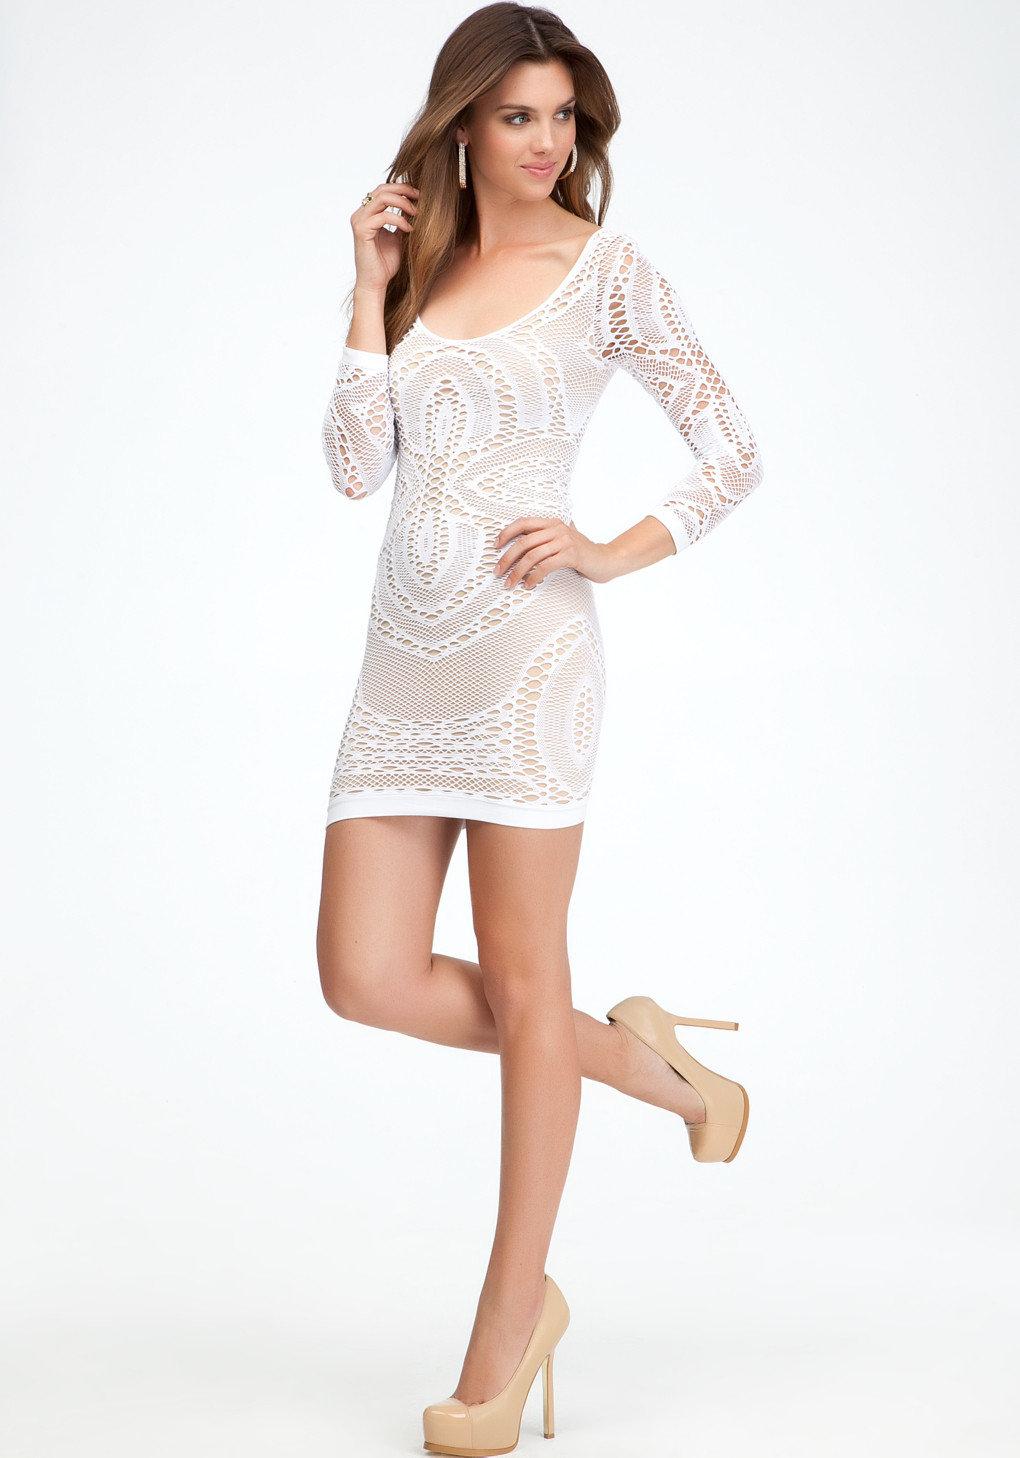 Awesome Bebe Crochet Lace Dress In White Lace Crochet Dress Of Incredible 42 Photos Lace Crochet Dress